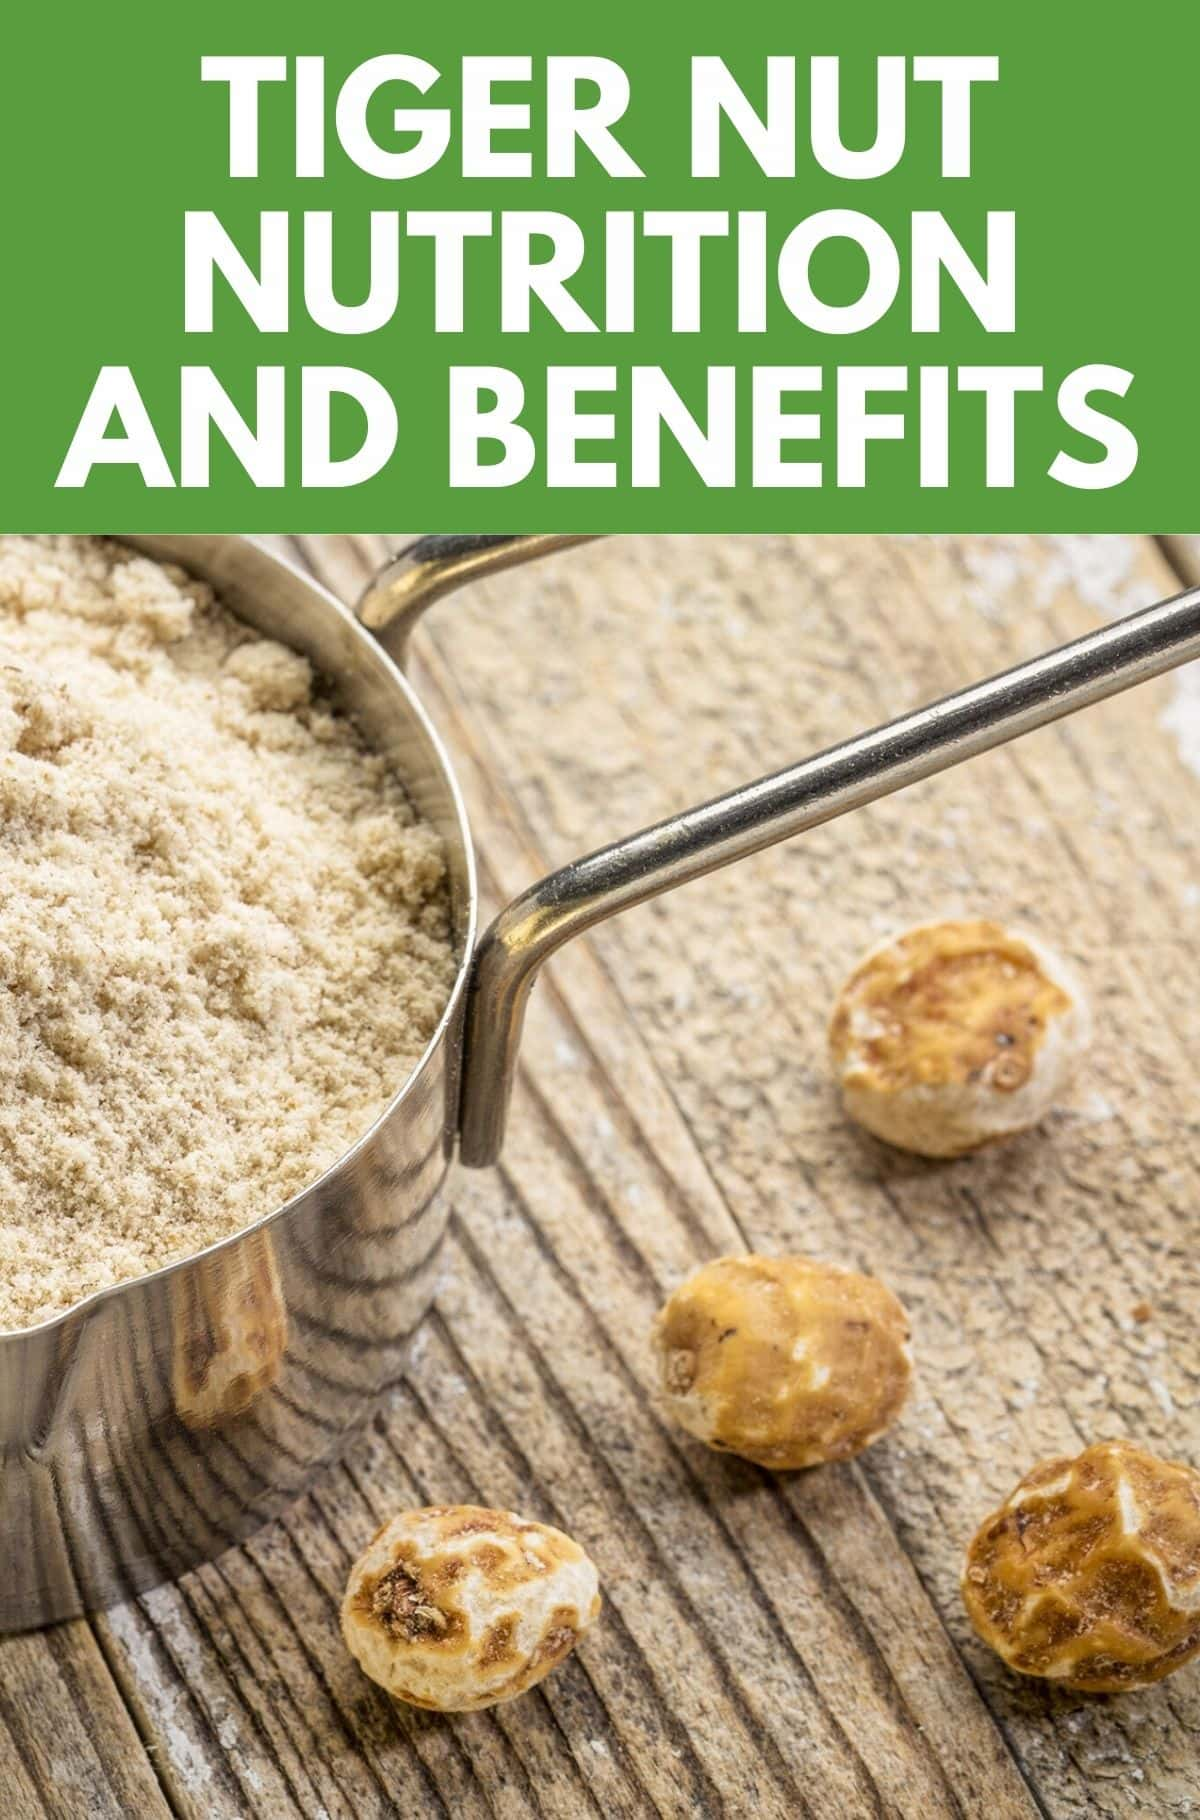 Tiger Nut Nutrition and Benefits